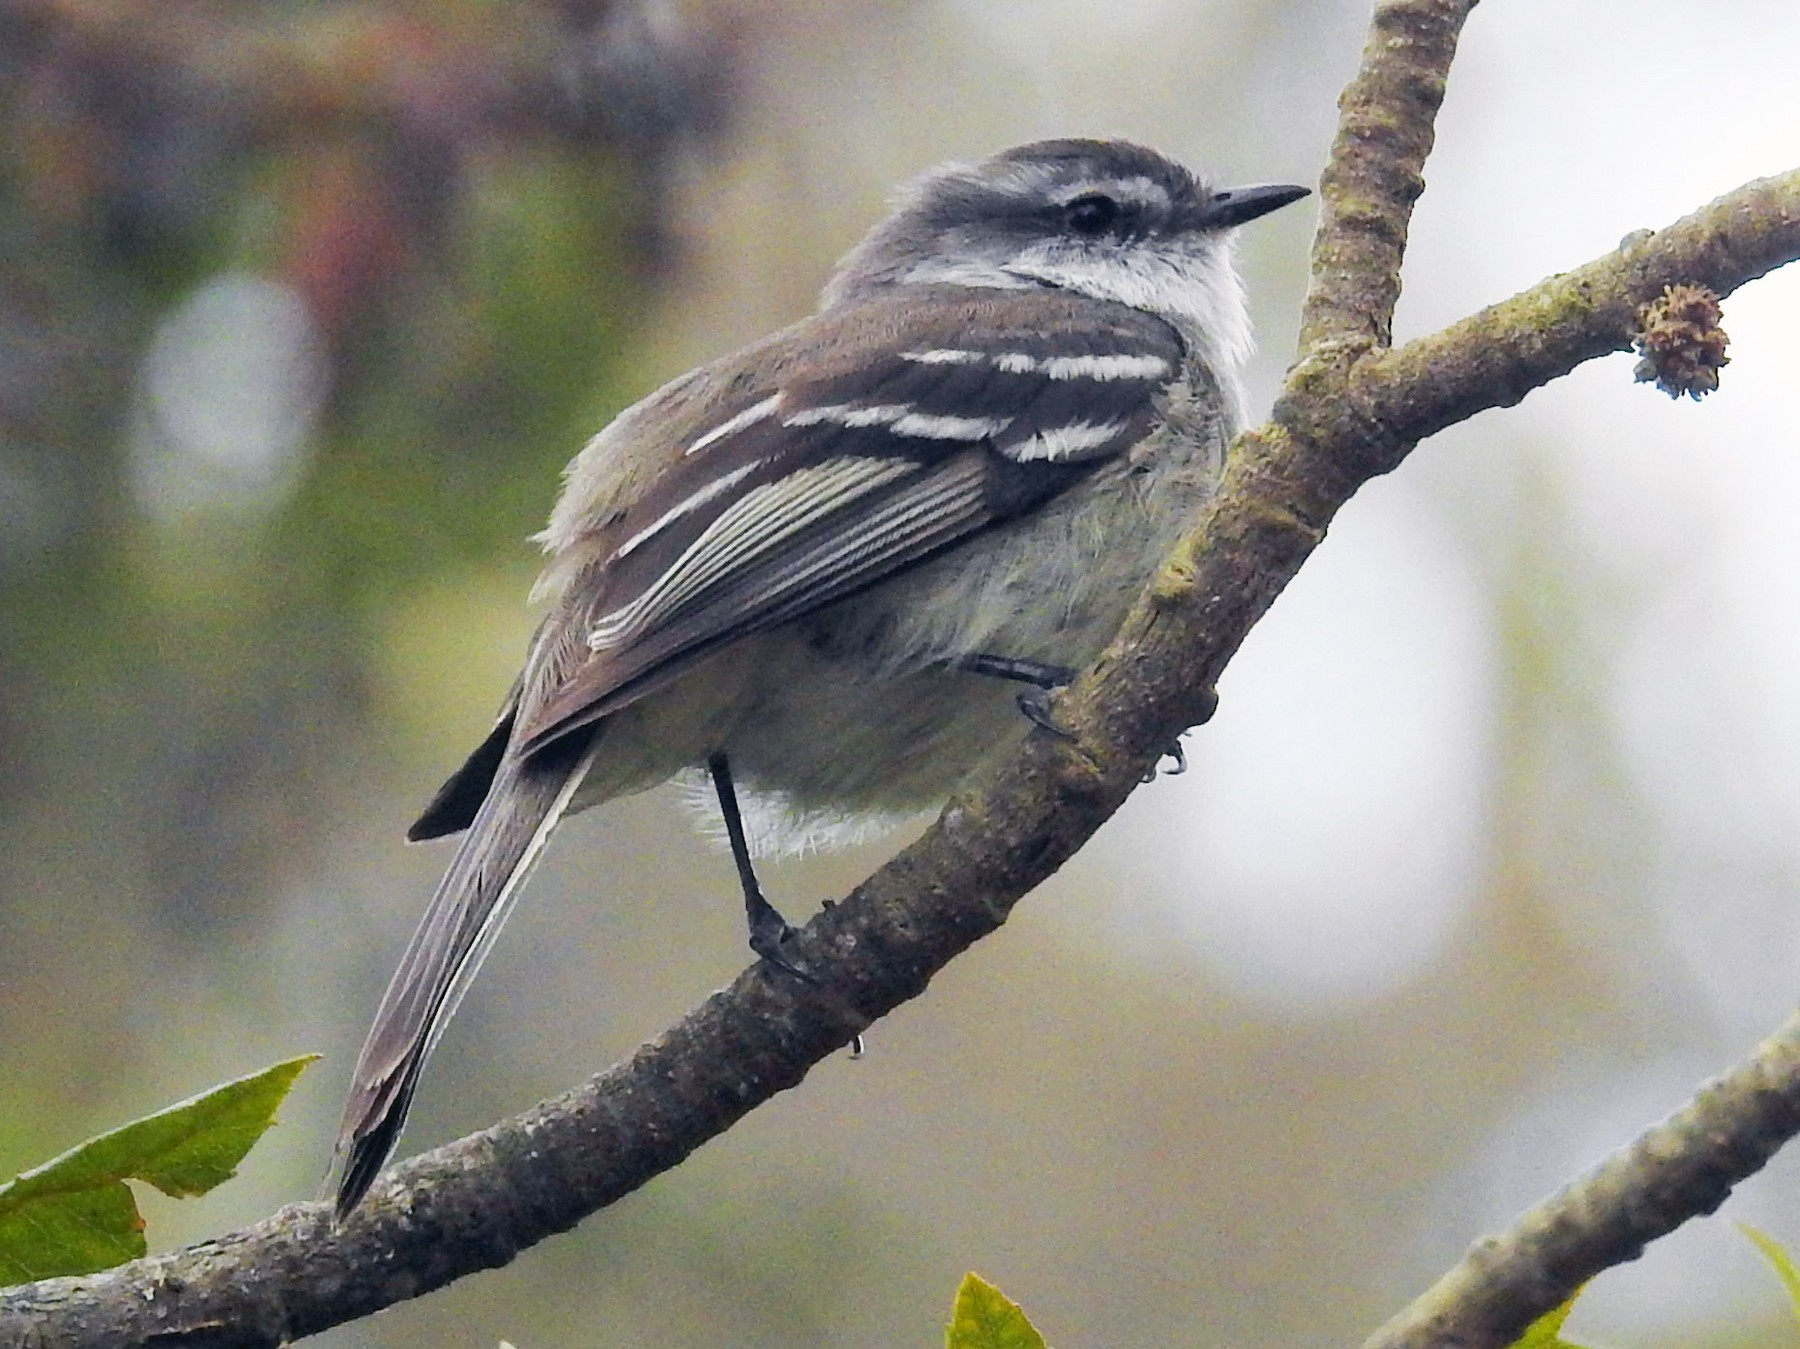 White-throated Tyrannulet - Heidi Ware Carlisle